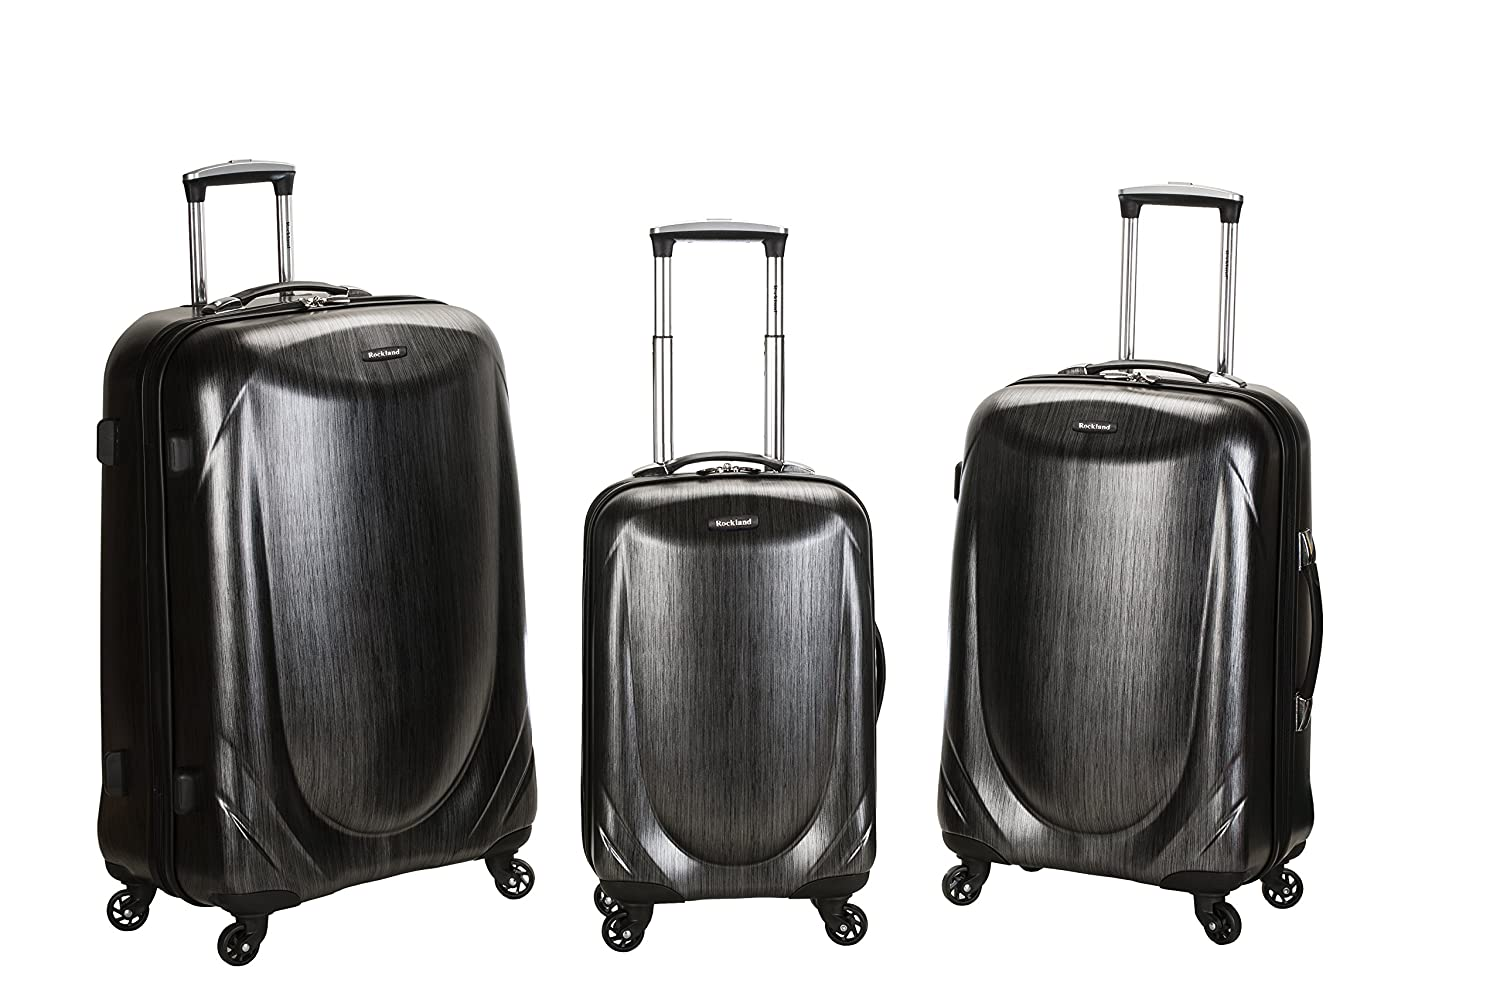 One Size Fox Luggage F222 Rockland Luggage 3 Piece Polycarbonate Spinner Set Gray